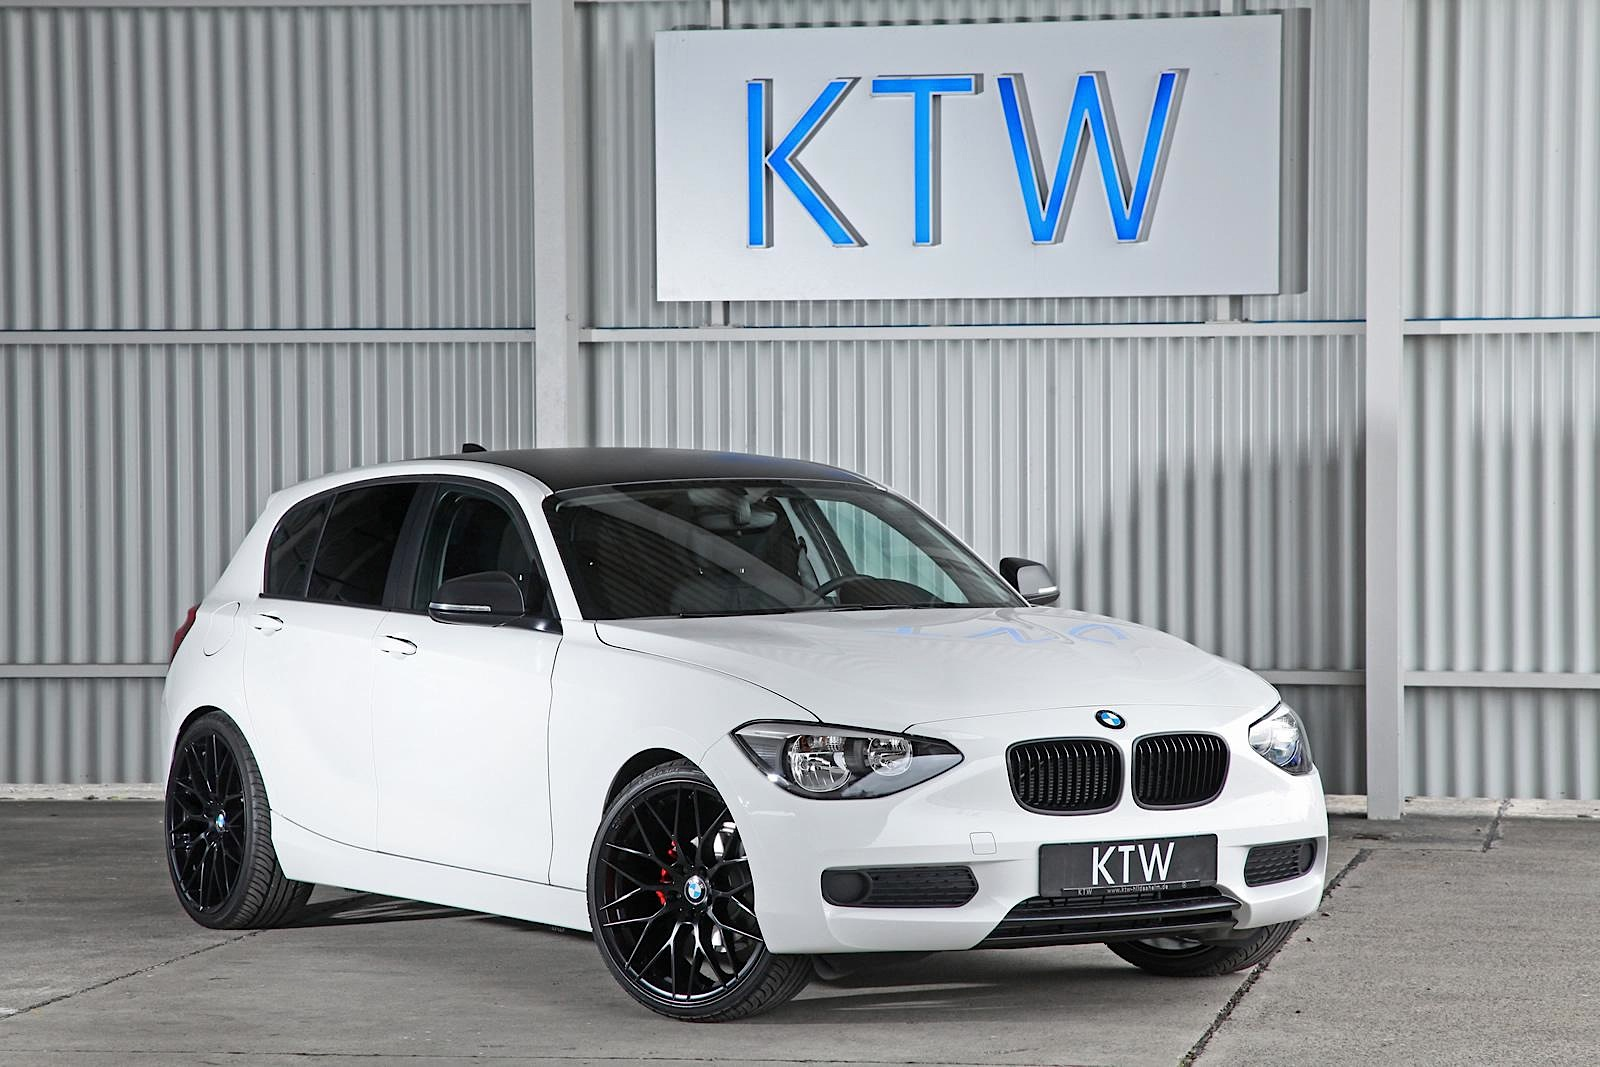 ktw launches black and white package for bmw 1 series autoevolution. Black Bedroom Furniture Sets. Home Design Ideas